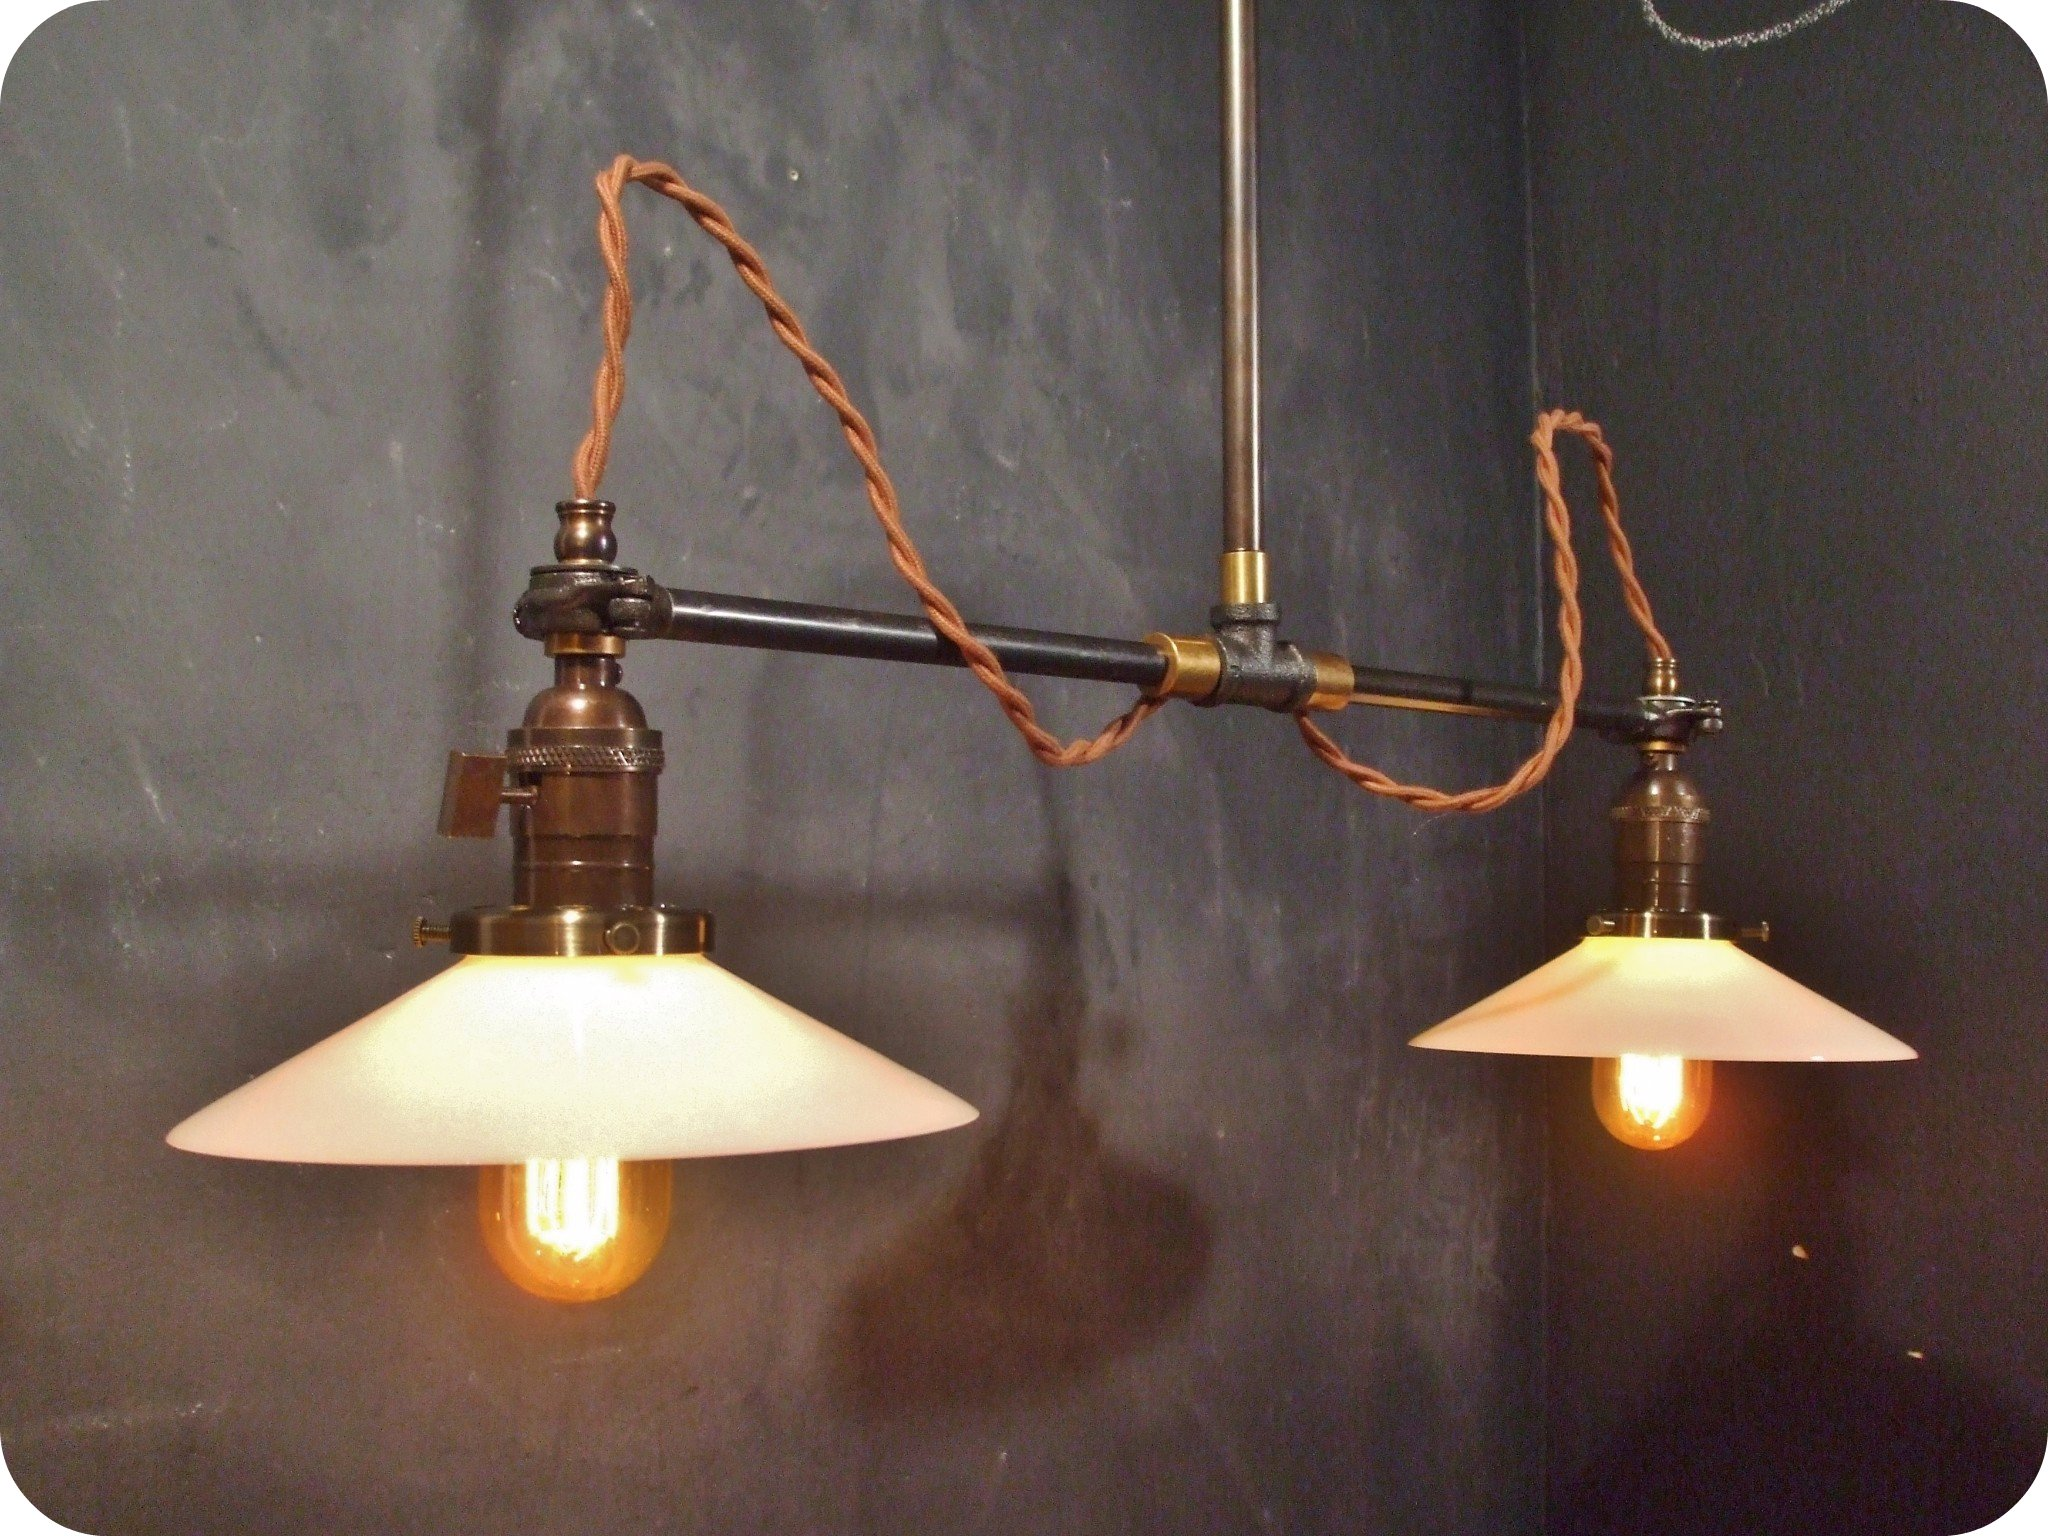 Vintage industrial double shade ceiling sconce machine age flat dscf2568 original aloadofball Image collections